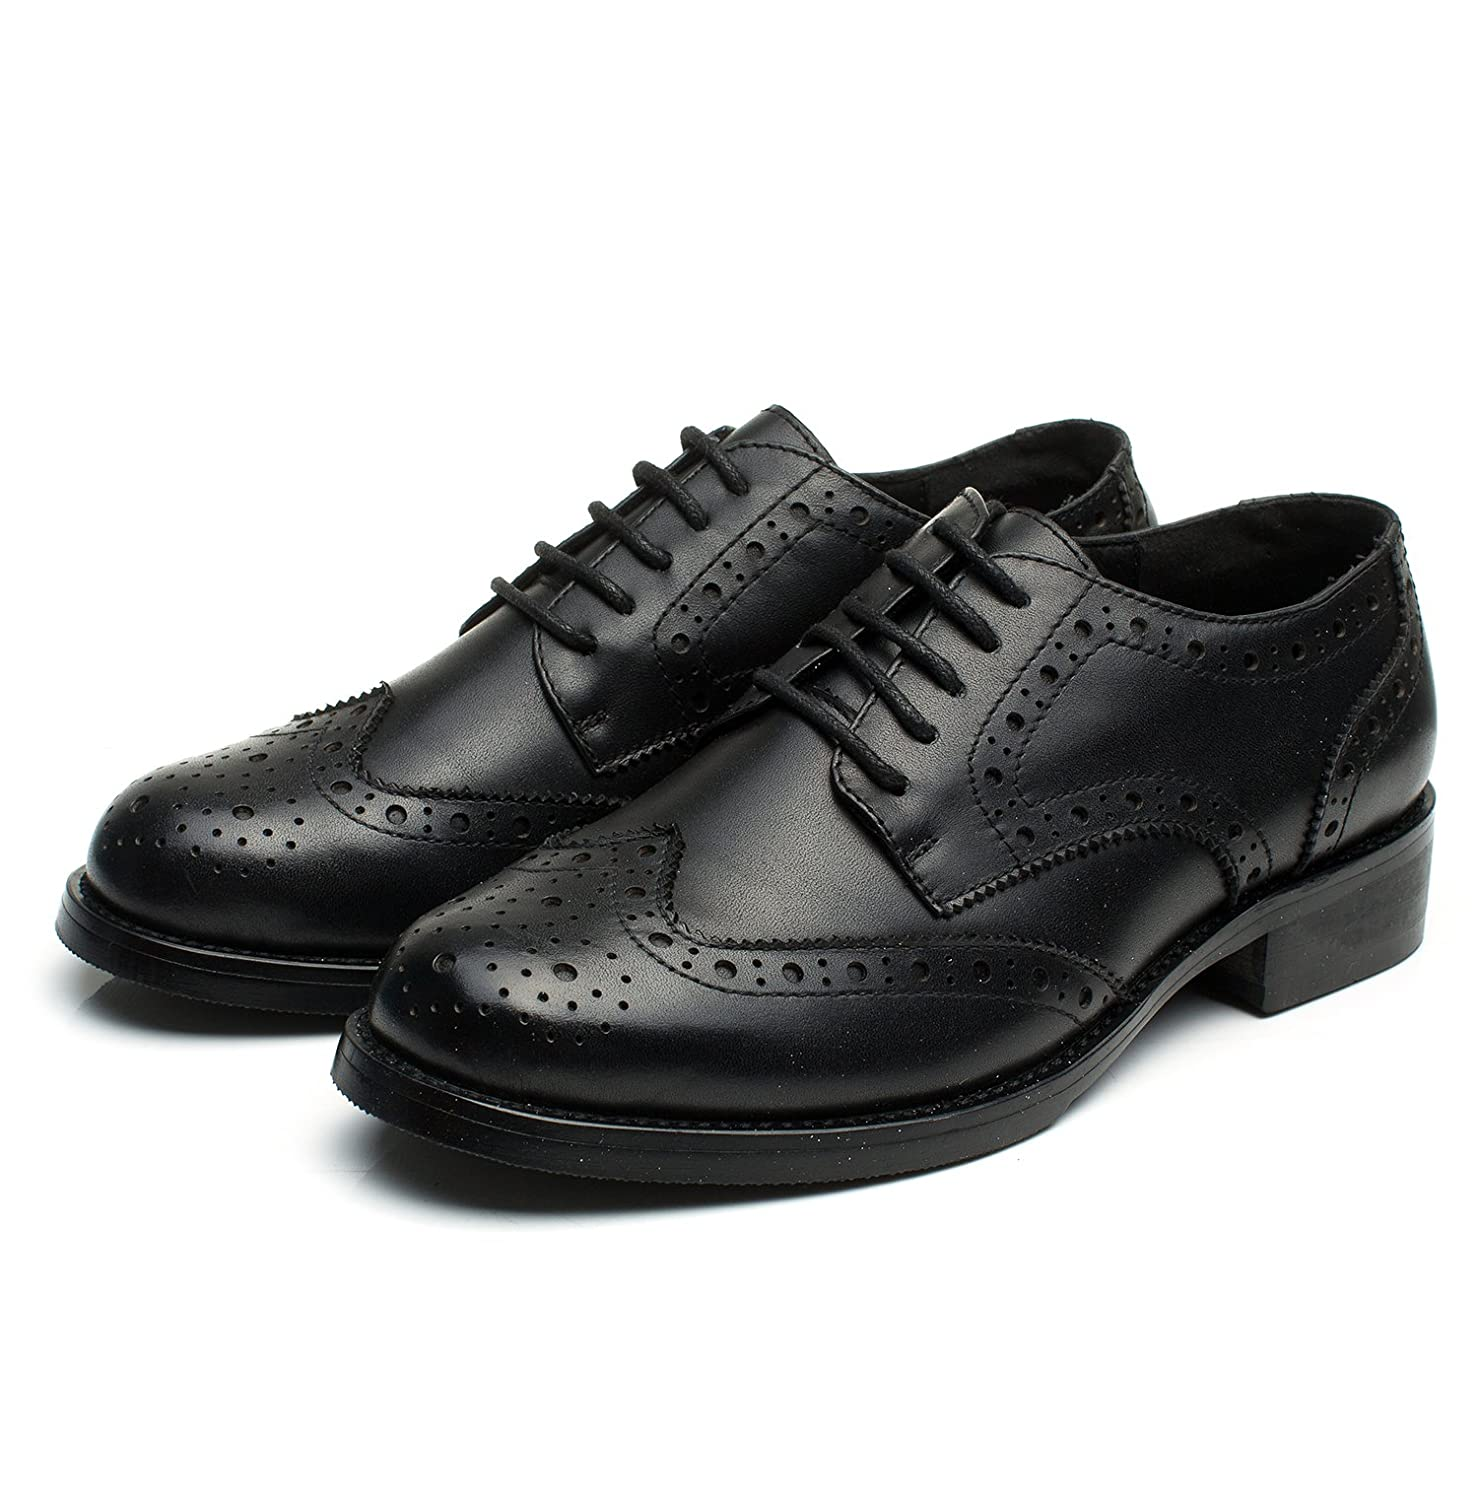 599e1be26b Amazon.com | U-lite Women's Perforated Lace-up Wingtip Leather Flat Oxfords  Vintage Oxford Shoes Brogues | Oxfords